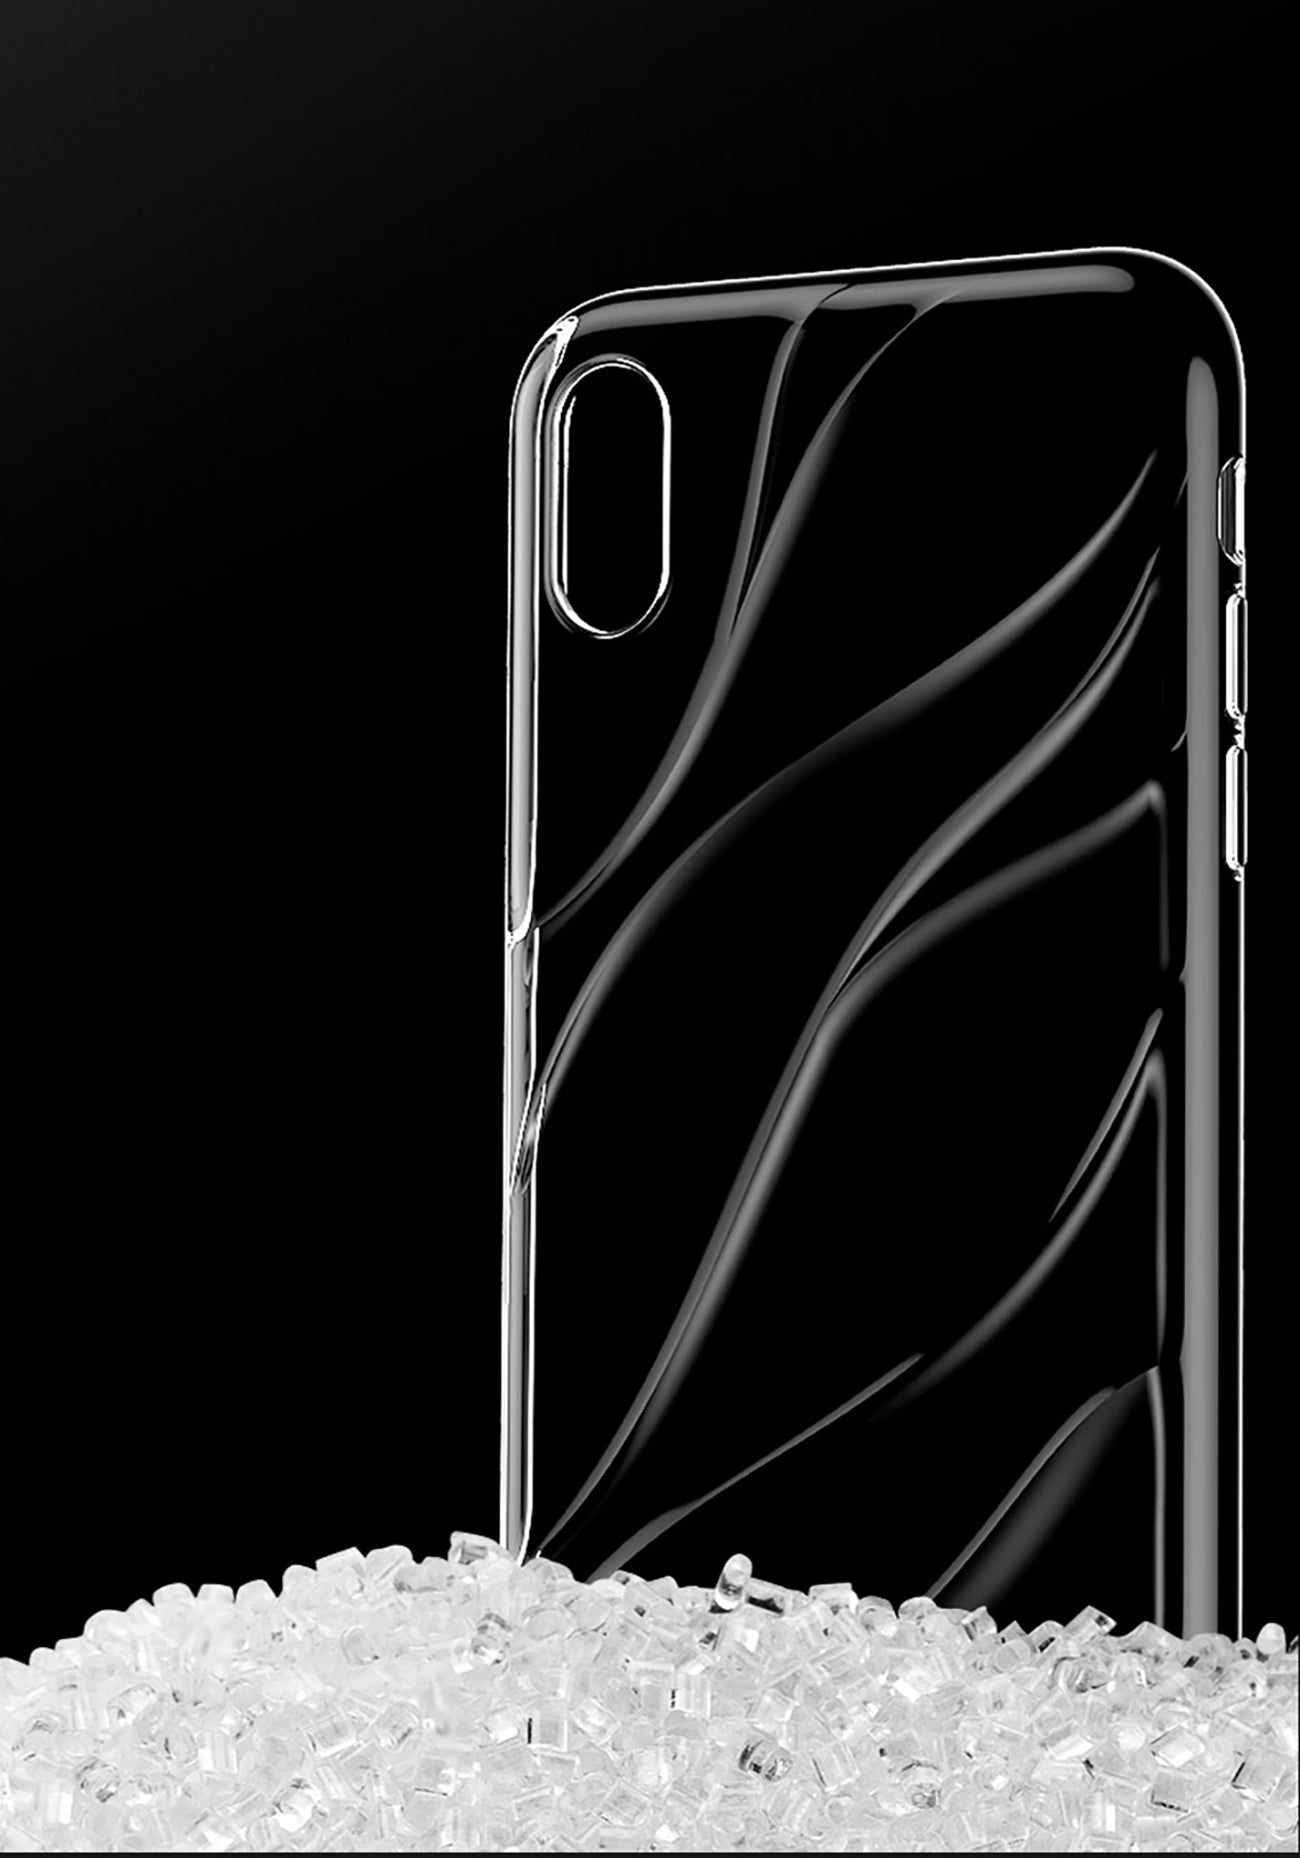 Apple iPhone X/Xs Baseus Water Series Luxurious Design Protective Silicone Case